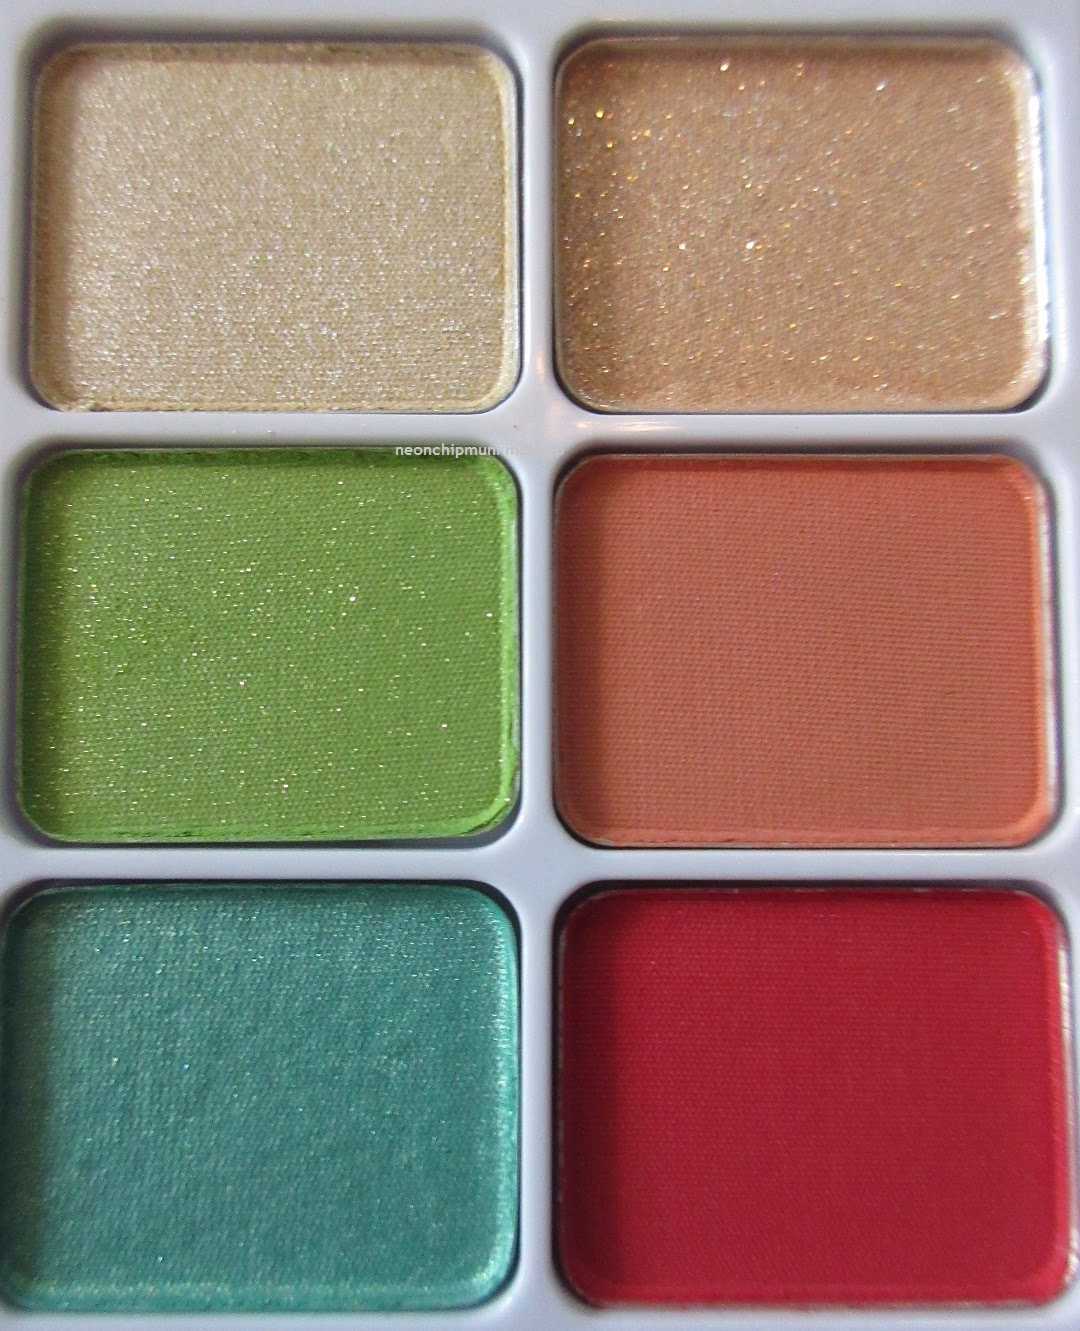 Wet n Wild California Roll Color Icon Eyeshadow Palette Close up